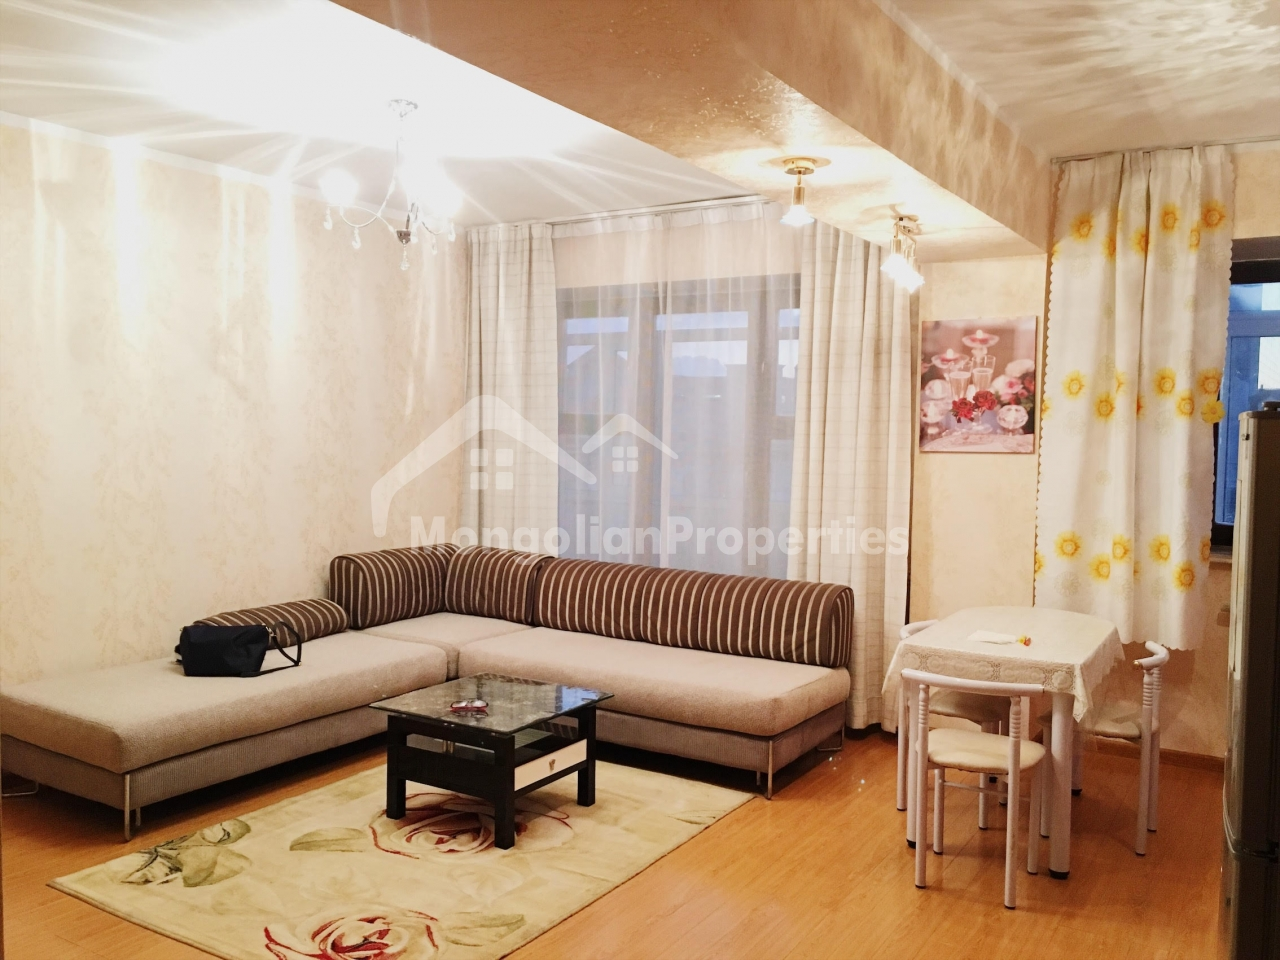 FOR RENT :COZY 1 BEDROOM APARTMENT NEXT TO THE STATE DEPARTMENT STORE